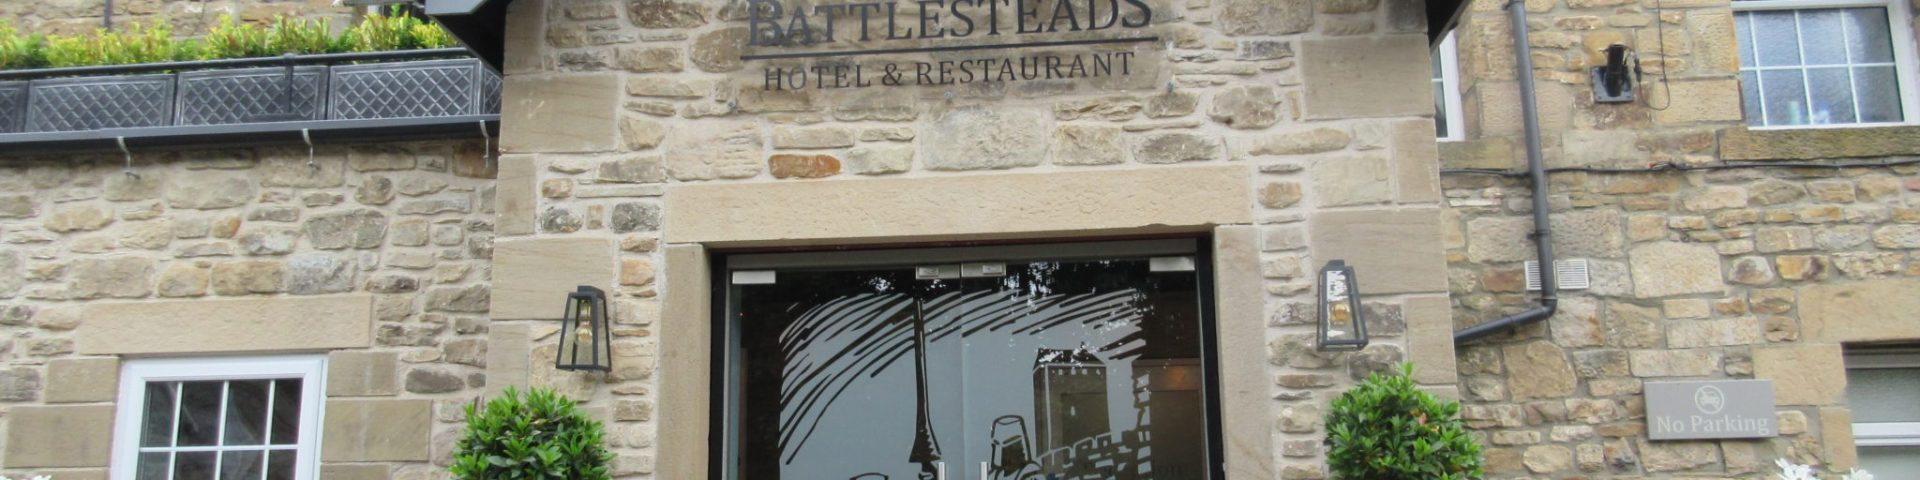 Battlesteads Hotel